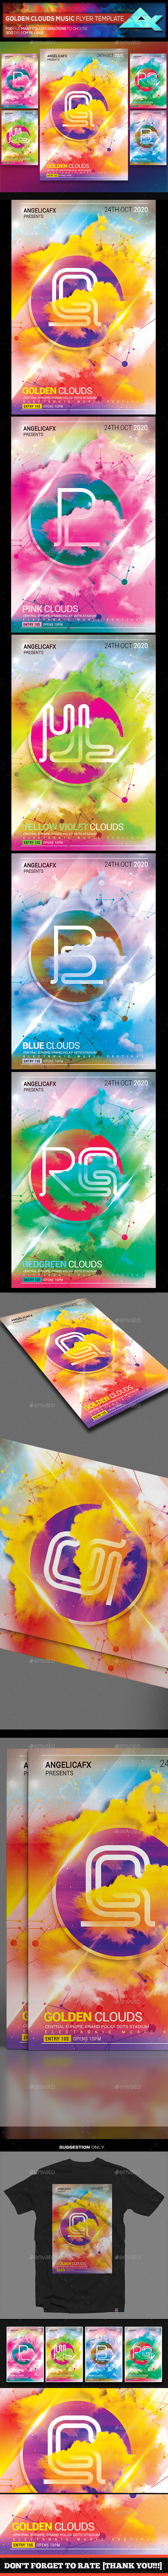 Golden Clouds Music Flyer Template - Flyers Print Templates